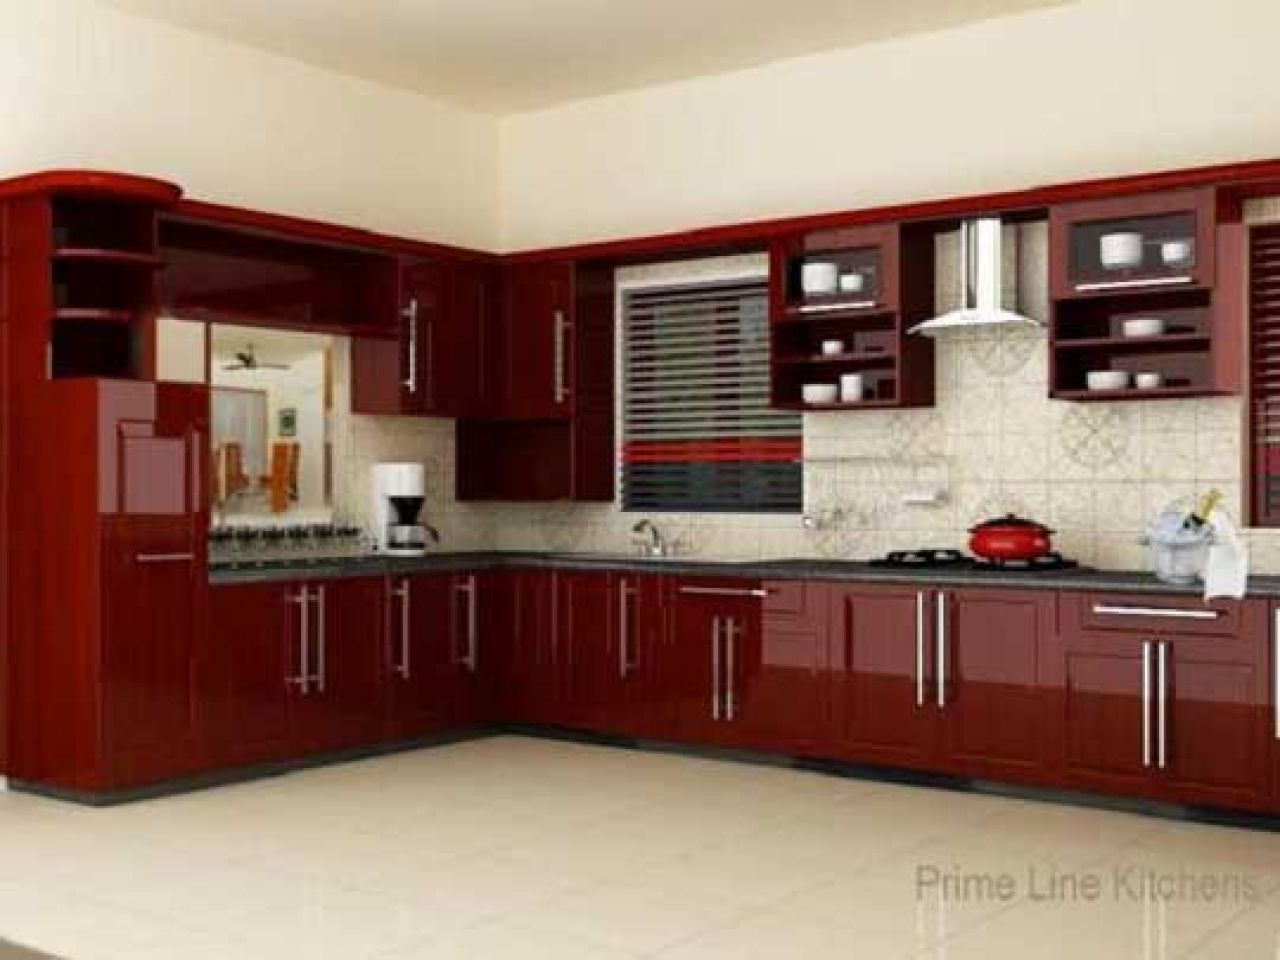 Remodeling Your Kitchen Ideas Kitchen Cabinet Styles Model